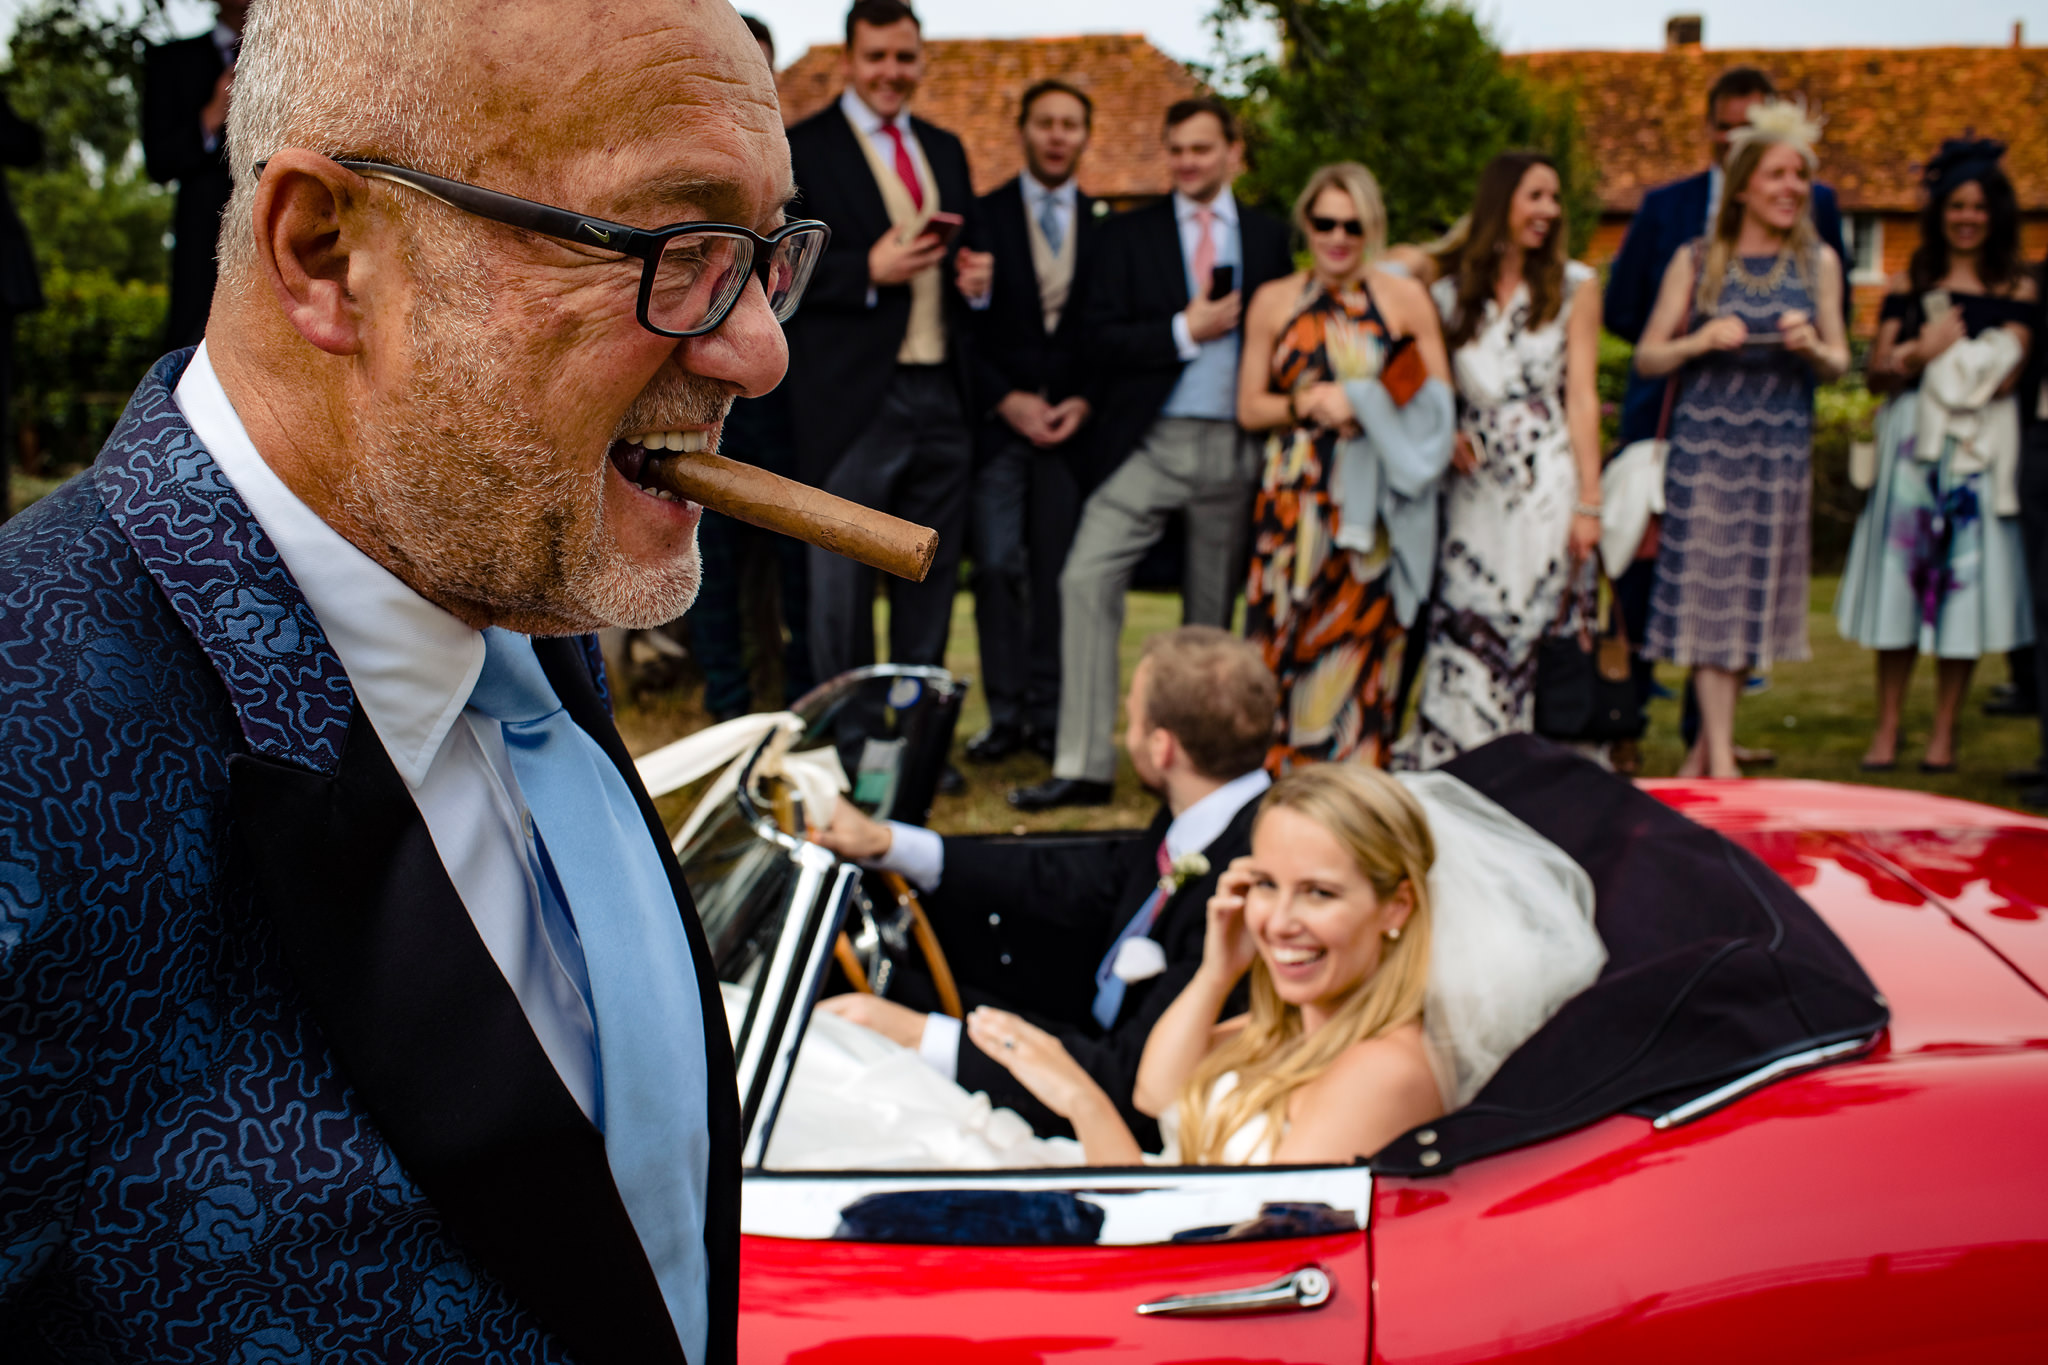 Man with cigar makes bride laugh - photo by Rich Howman